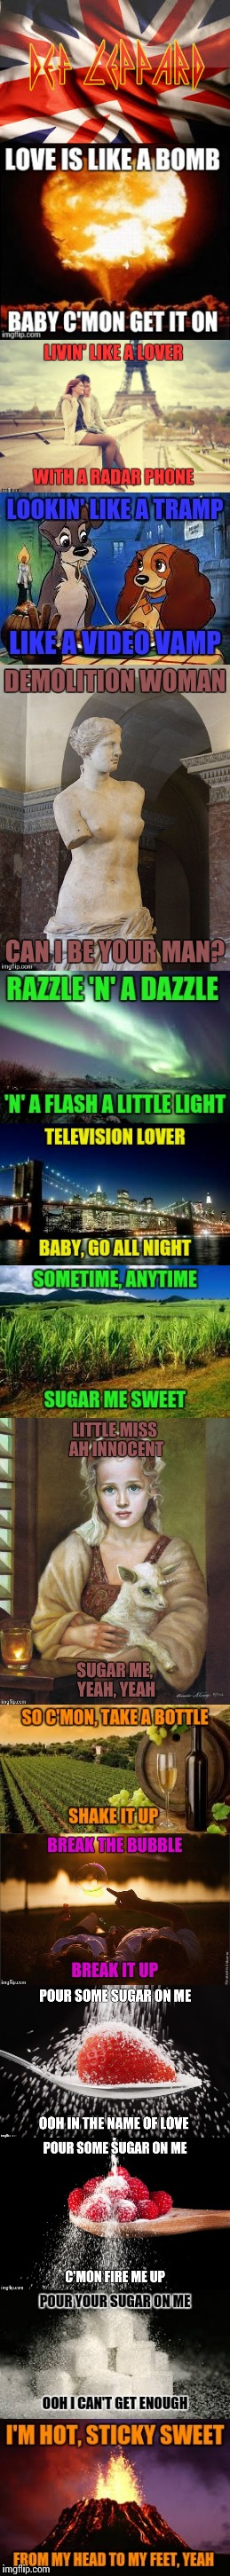 Pour Some Sugar On Me | image tagged in song lyrics,lyrics,def leppard,meme,landscapes,love | made w/ Imgflip meme maker